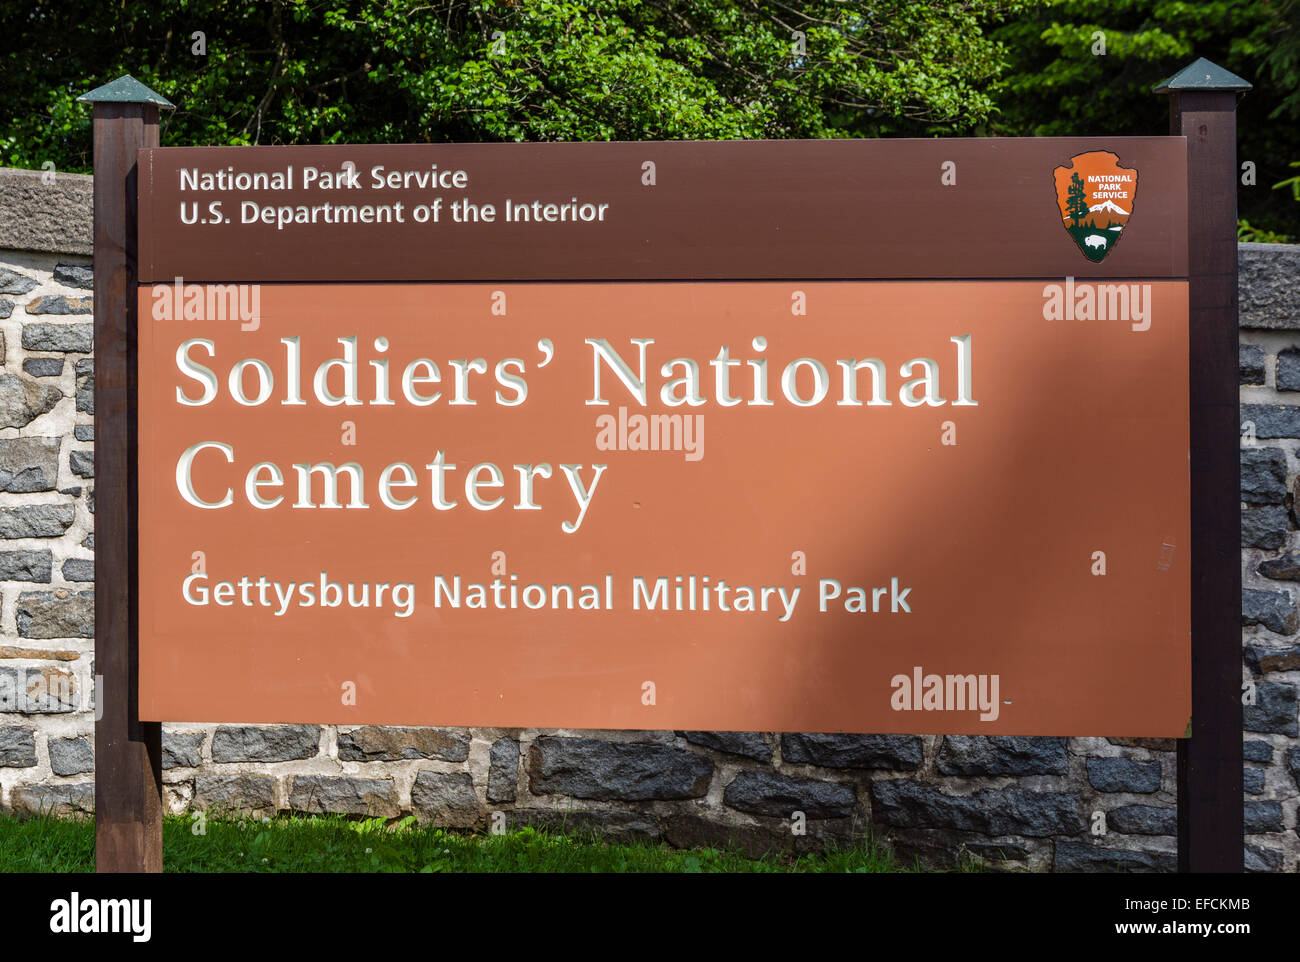 Entrance to Soldiers' National Cemetery, Gettysburg National Militiary Park, Pennsylvania, USA - Stock Image